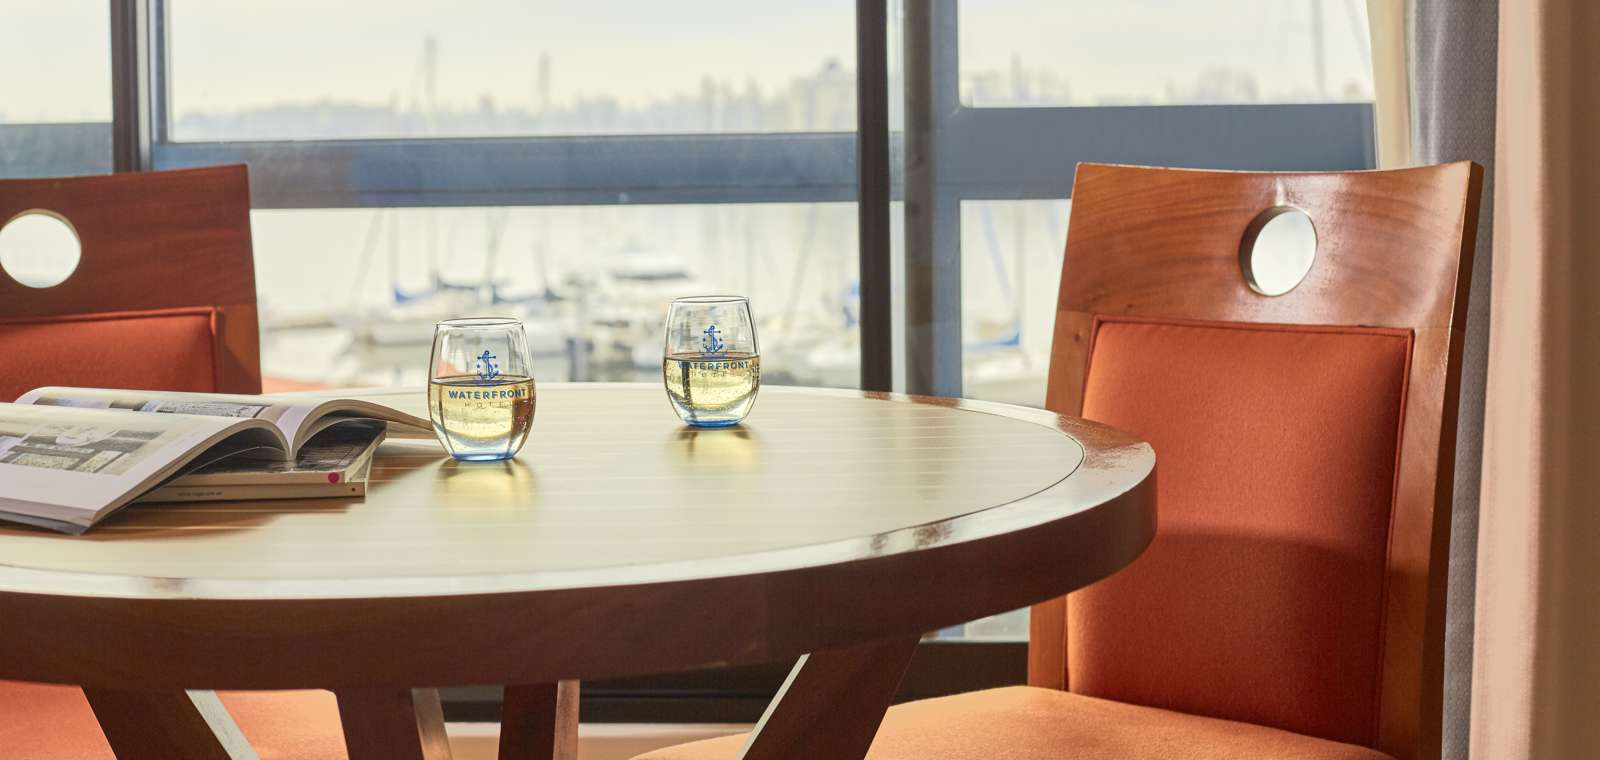 Waterfront-Hotel-Waterfront-View-View